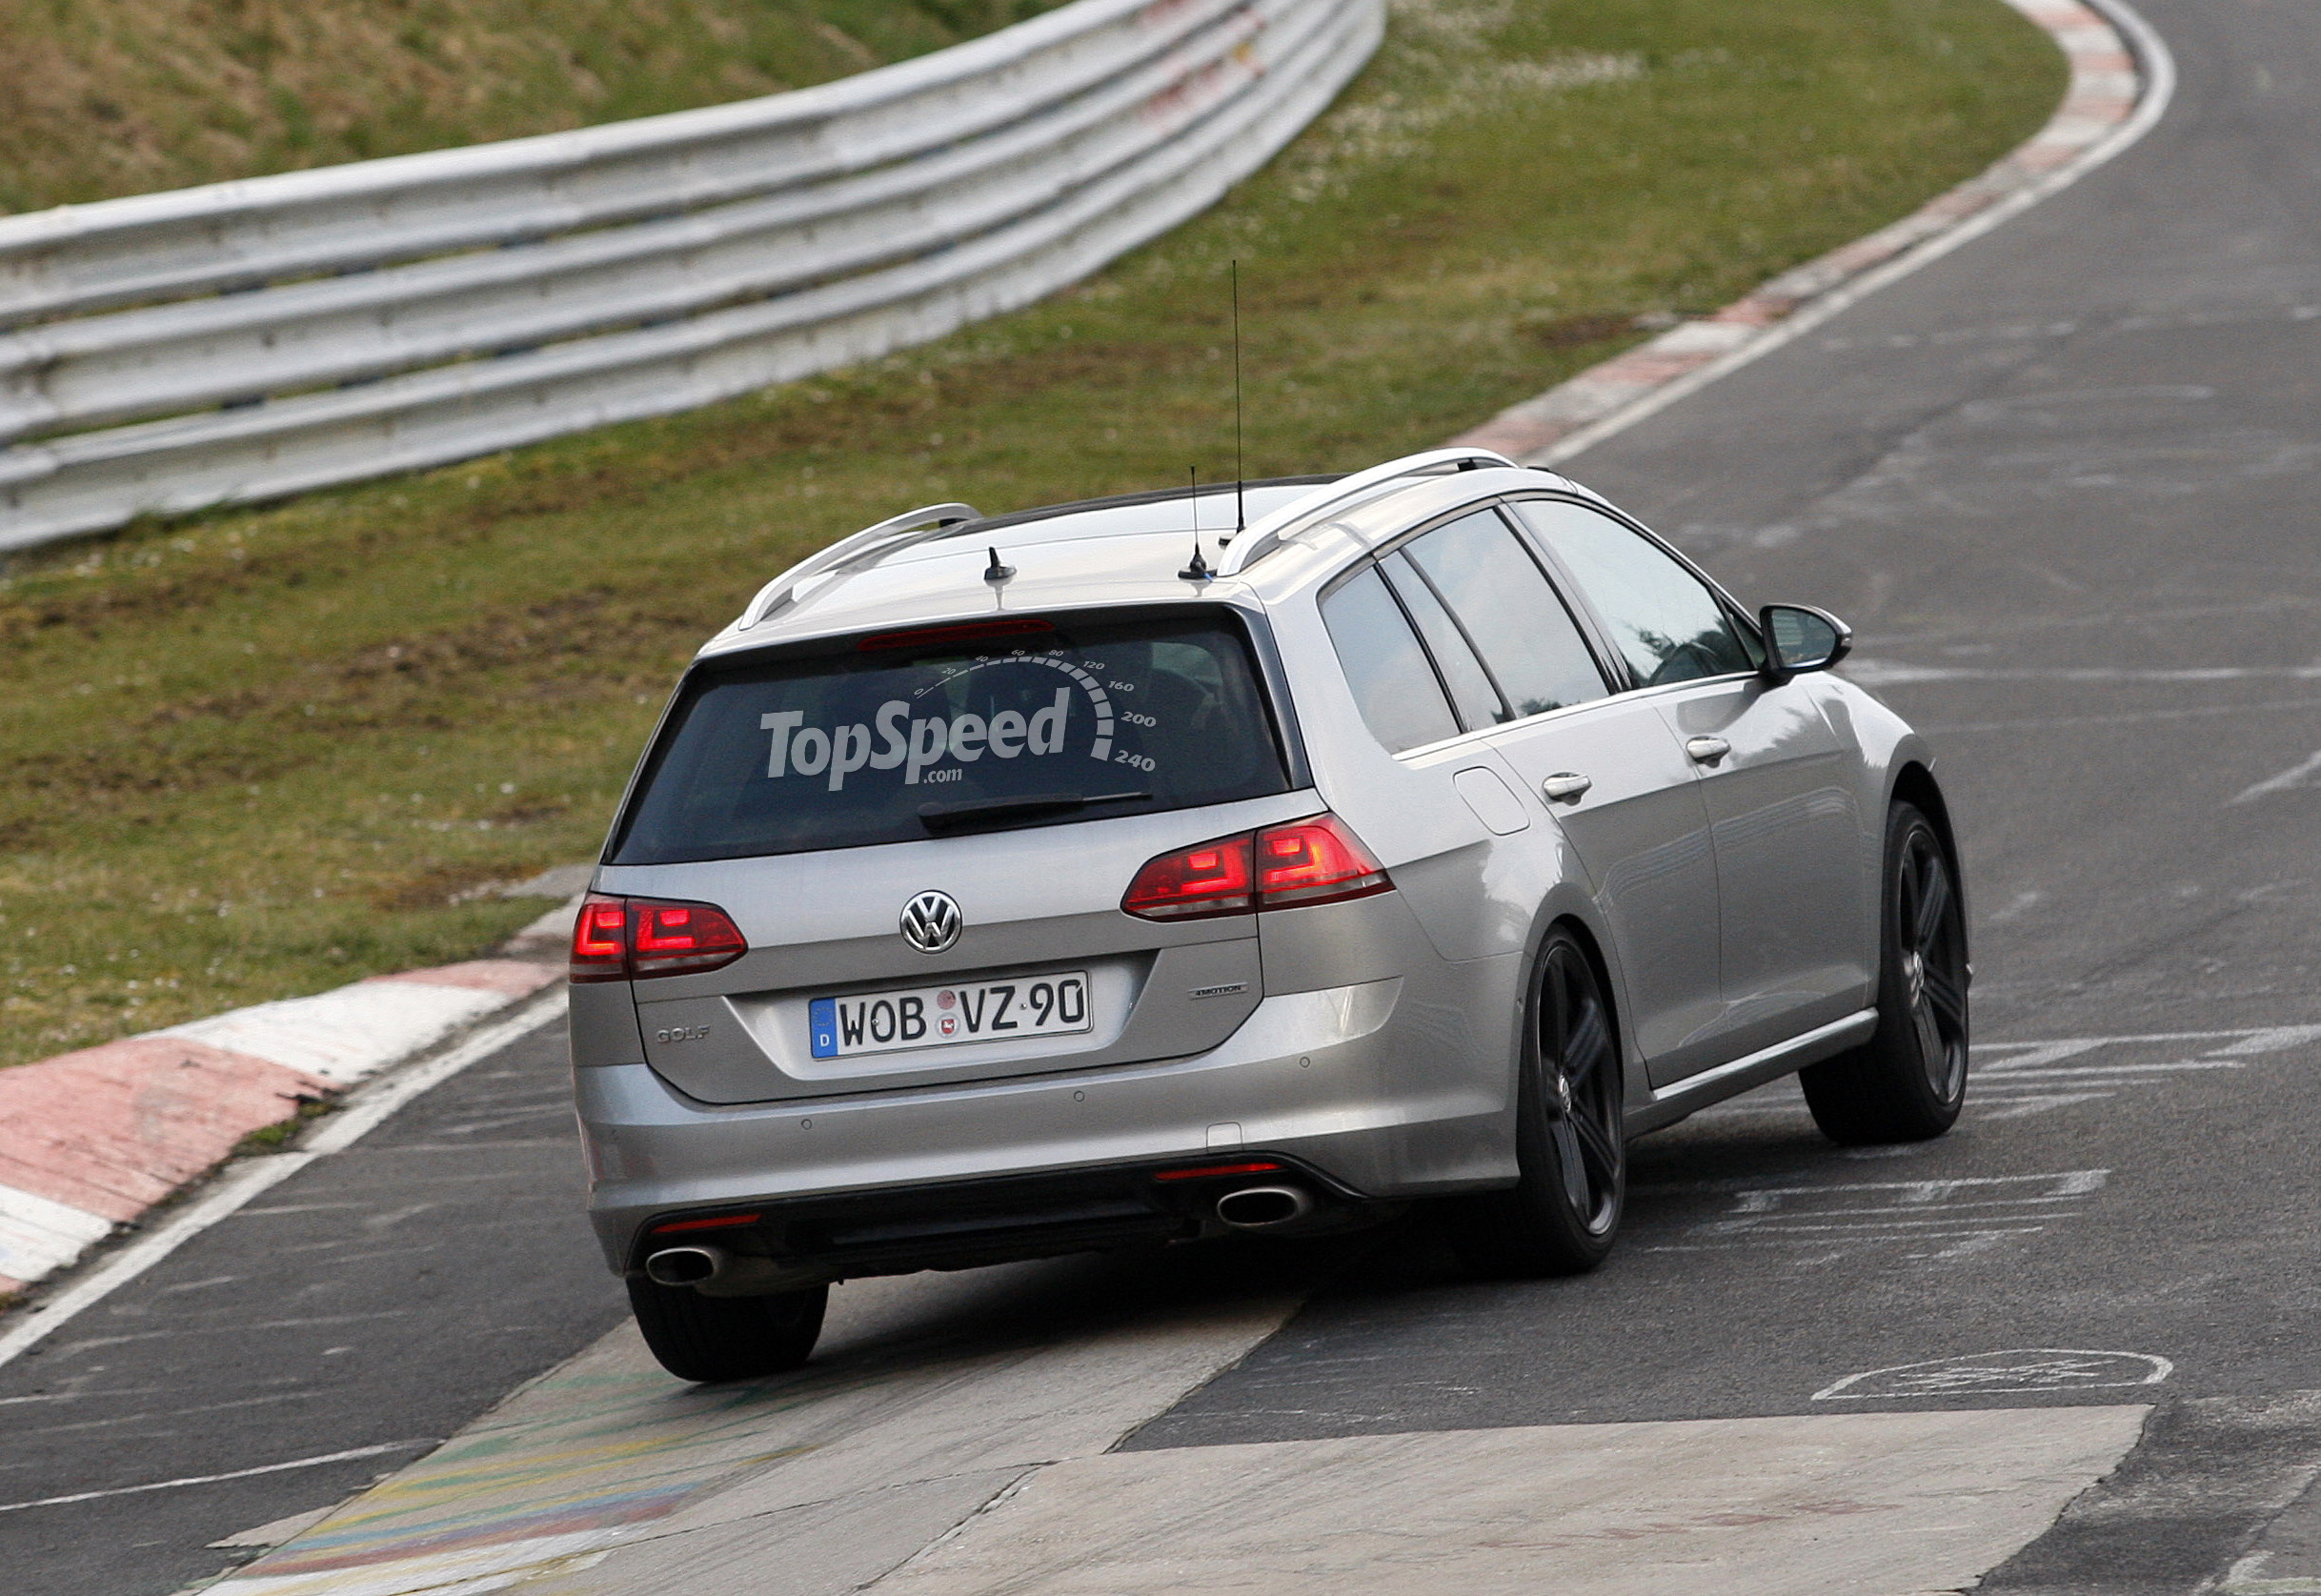 First pics of the MK8 Volkswagen Golf Wagon - Automotive Daily